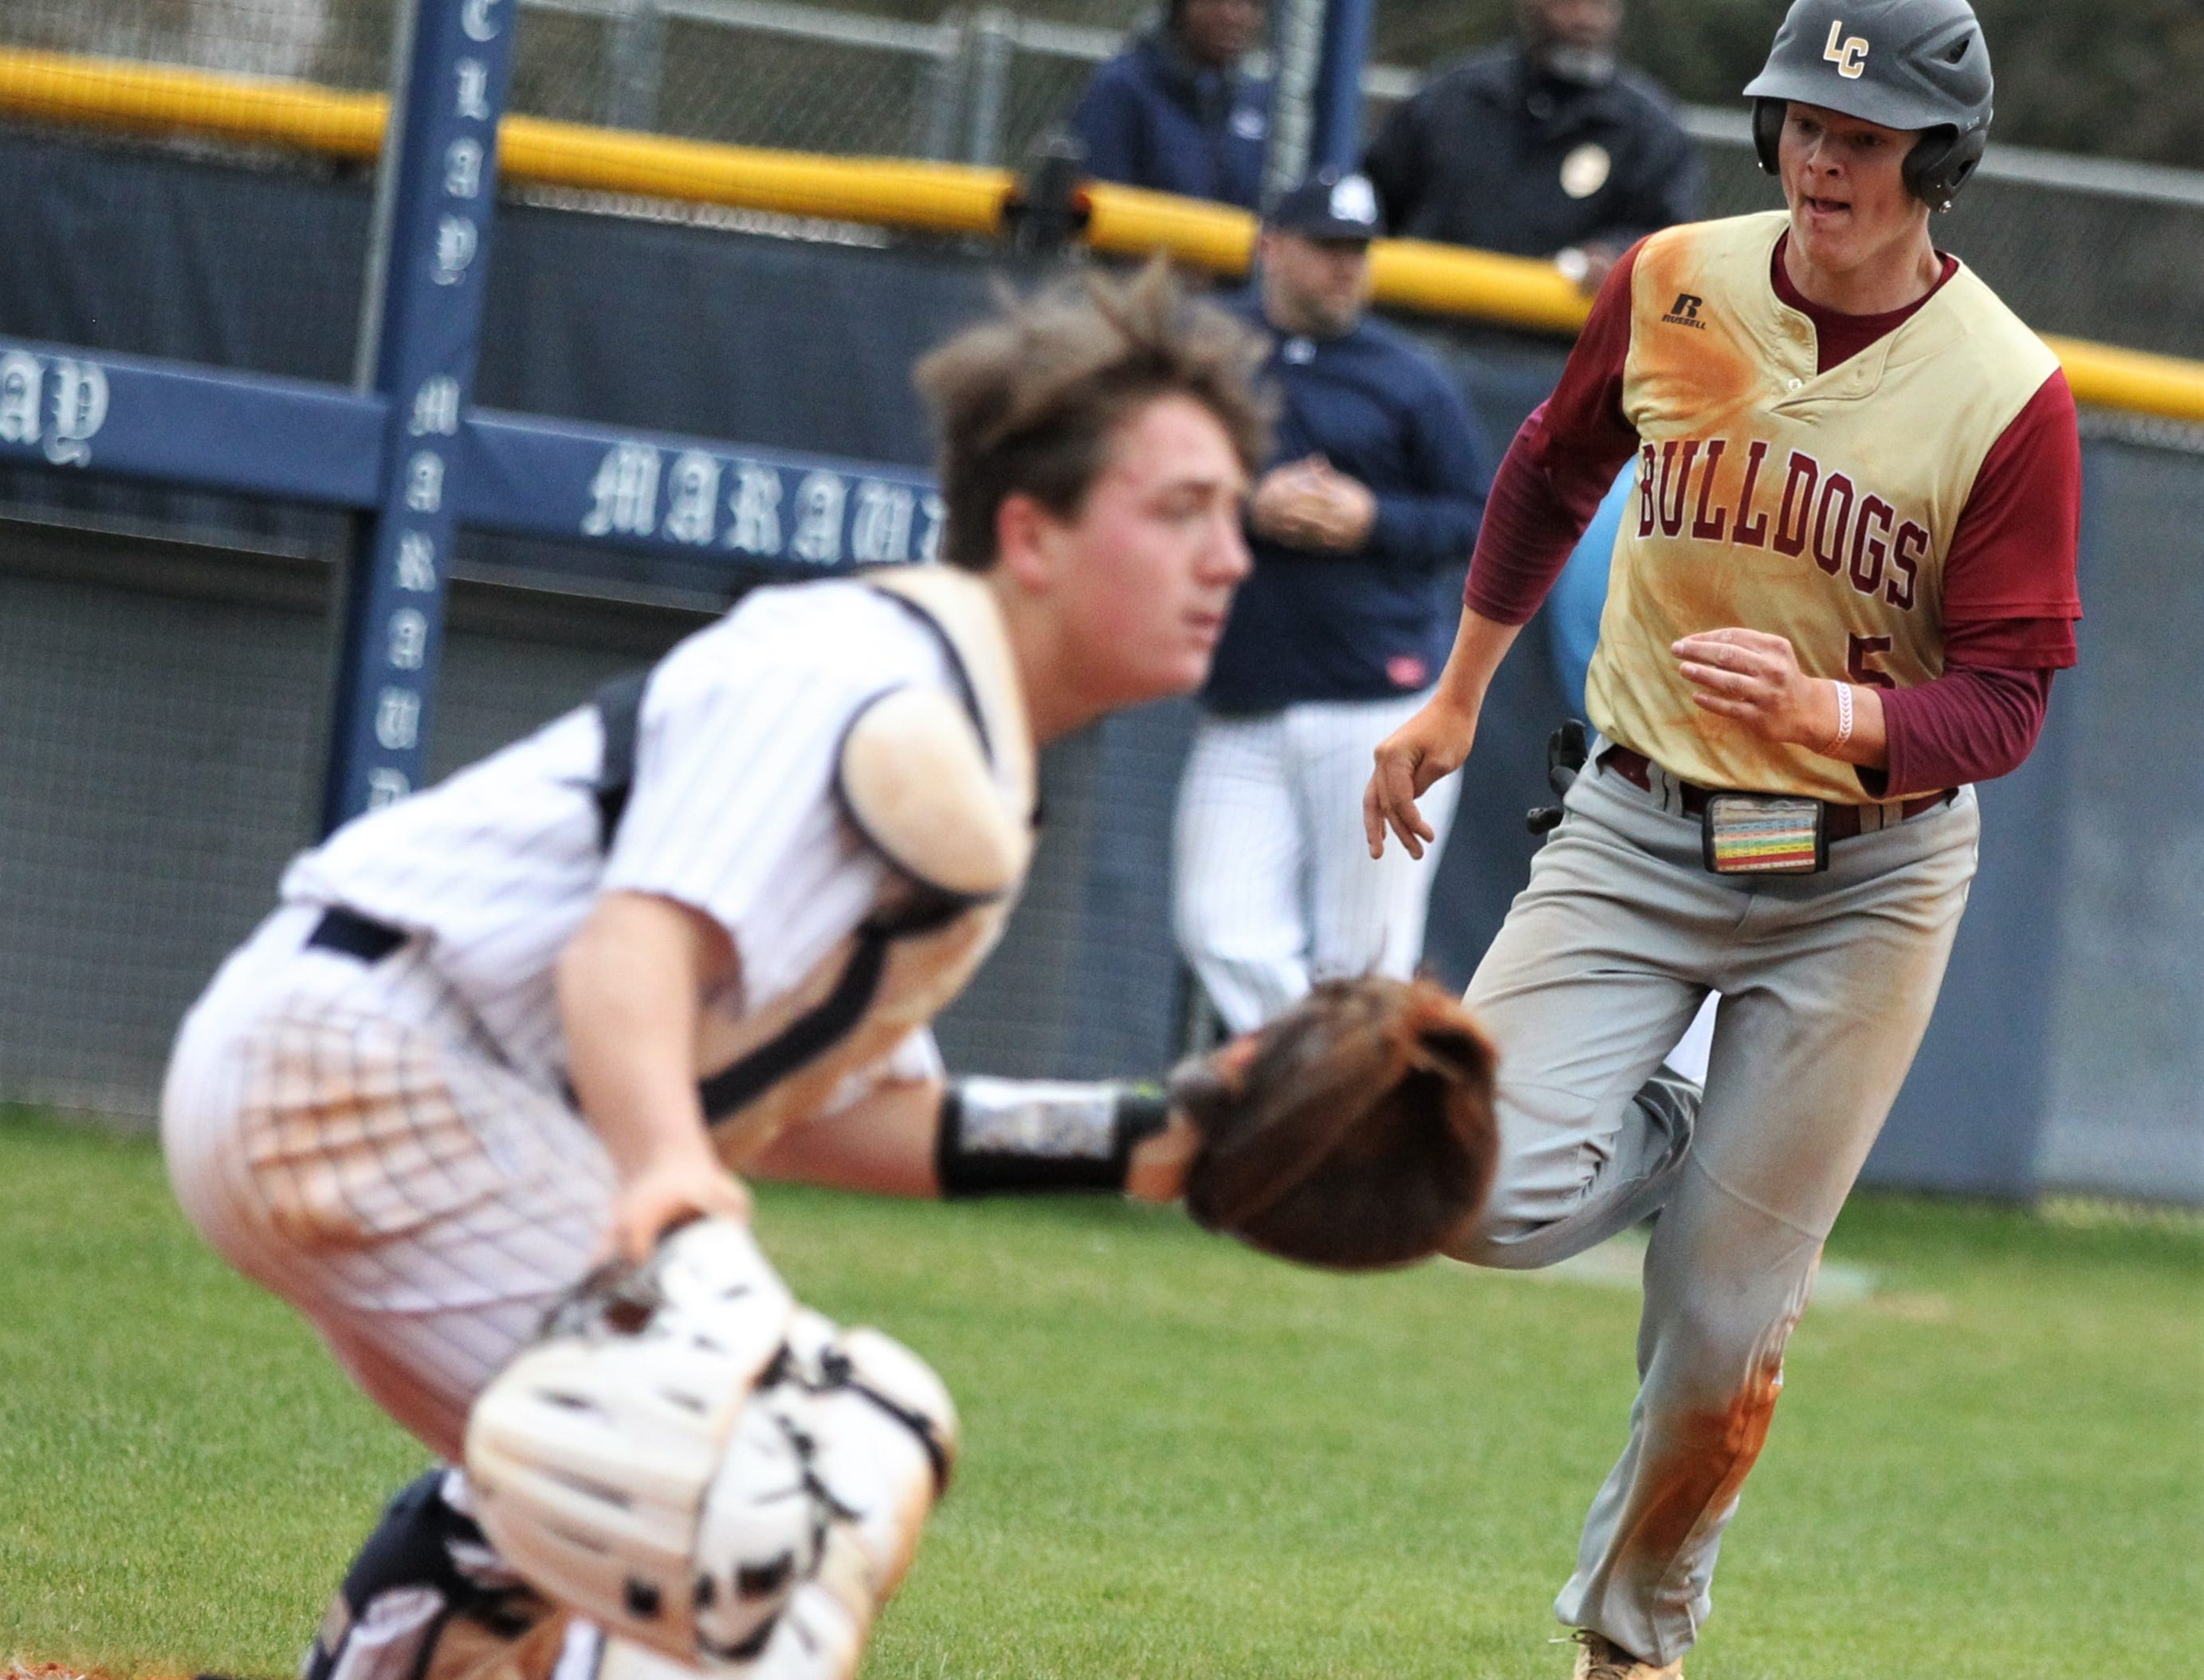 Liberty County's Brice Dillmore races home to score on a fielder's choice as Liberty County's baseball team went on the road to beat Maclay 8-2 on Saturday, March 16, 2019. The Bulldogs played their first game following their head coach Corey Crum's tragic death six days ago.